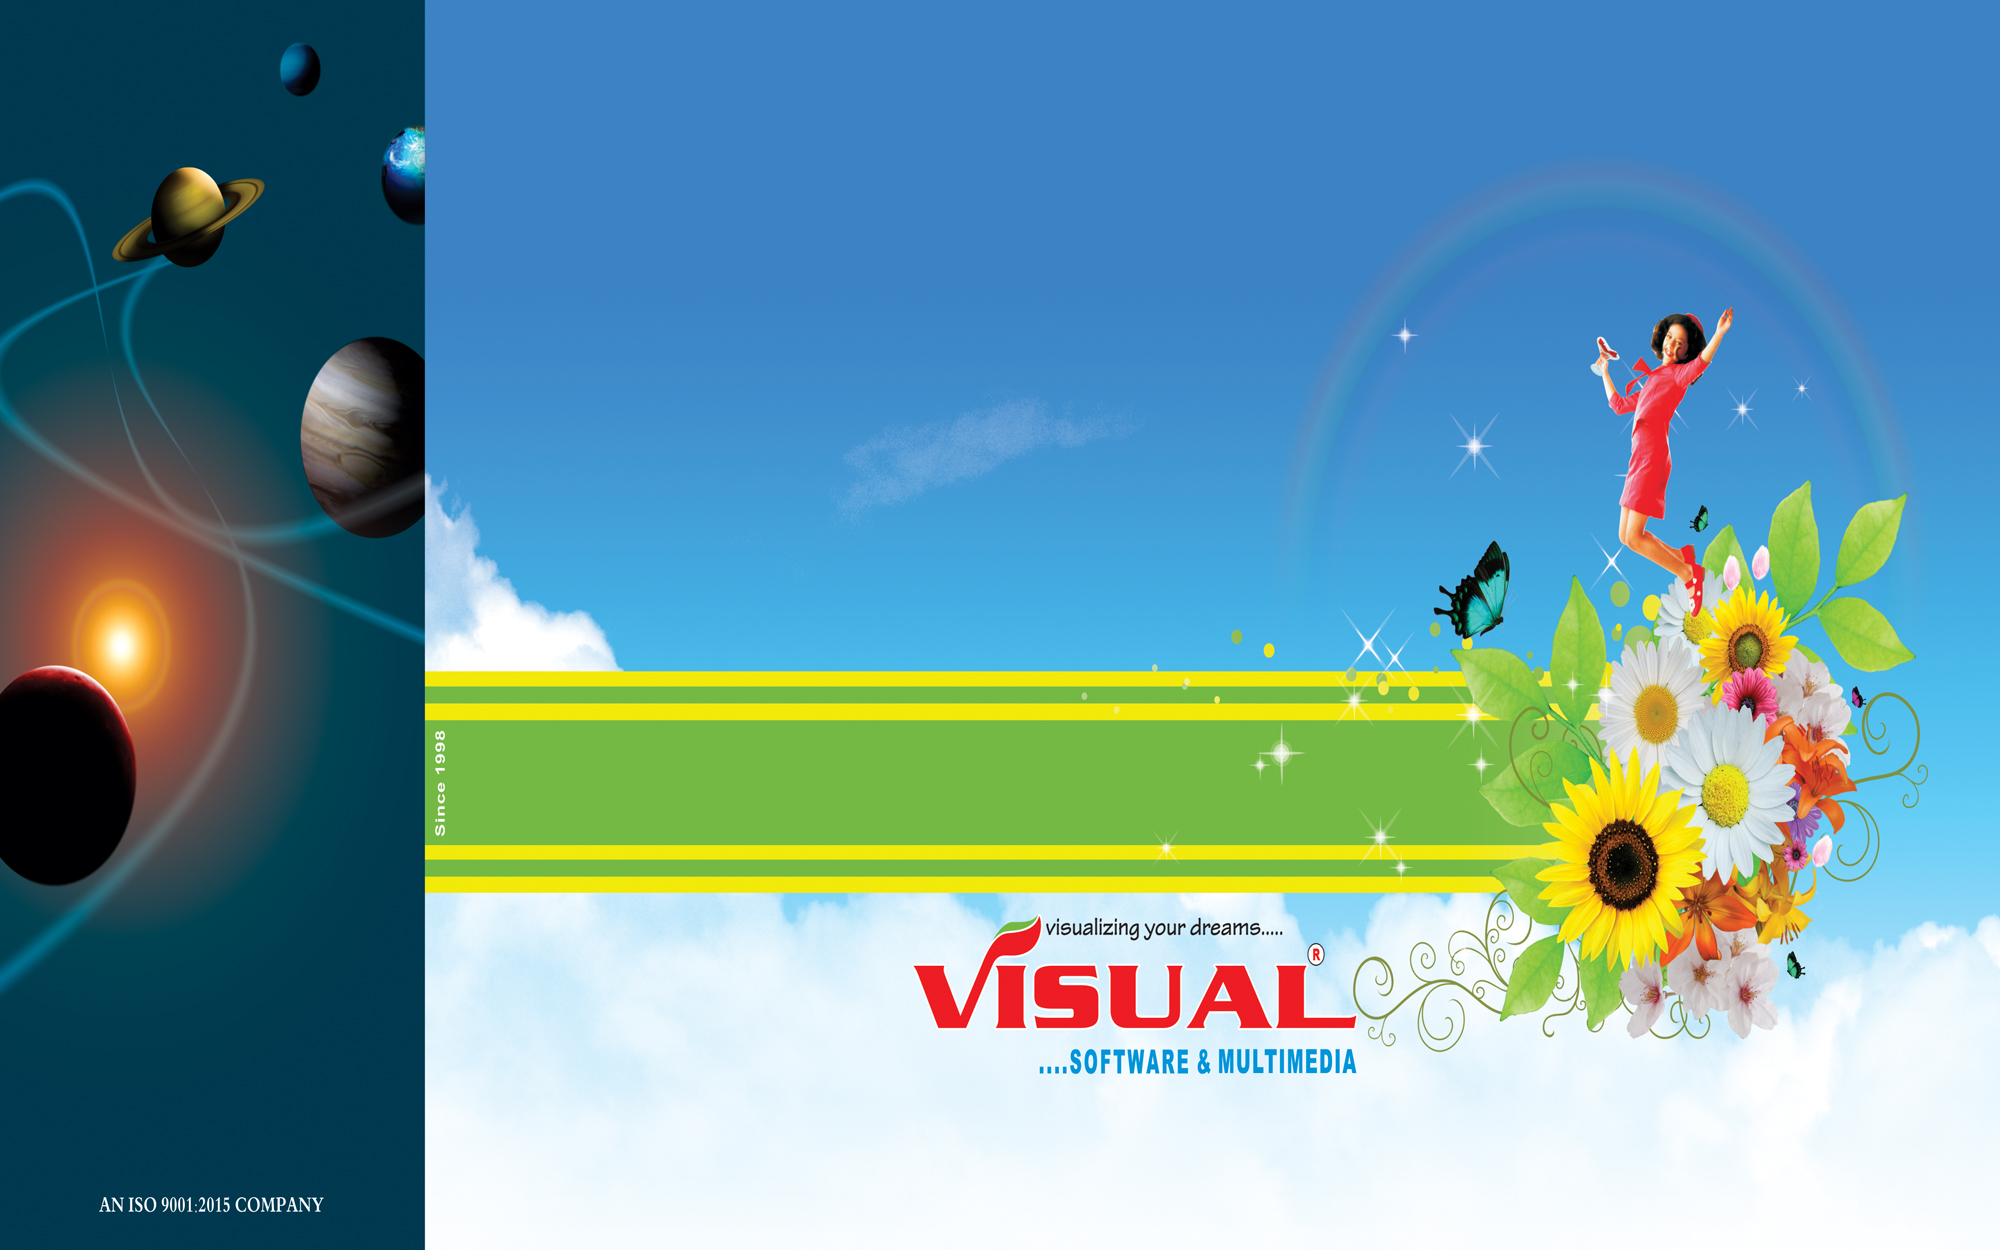 Visual Software & Multime